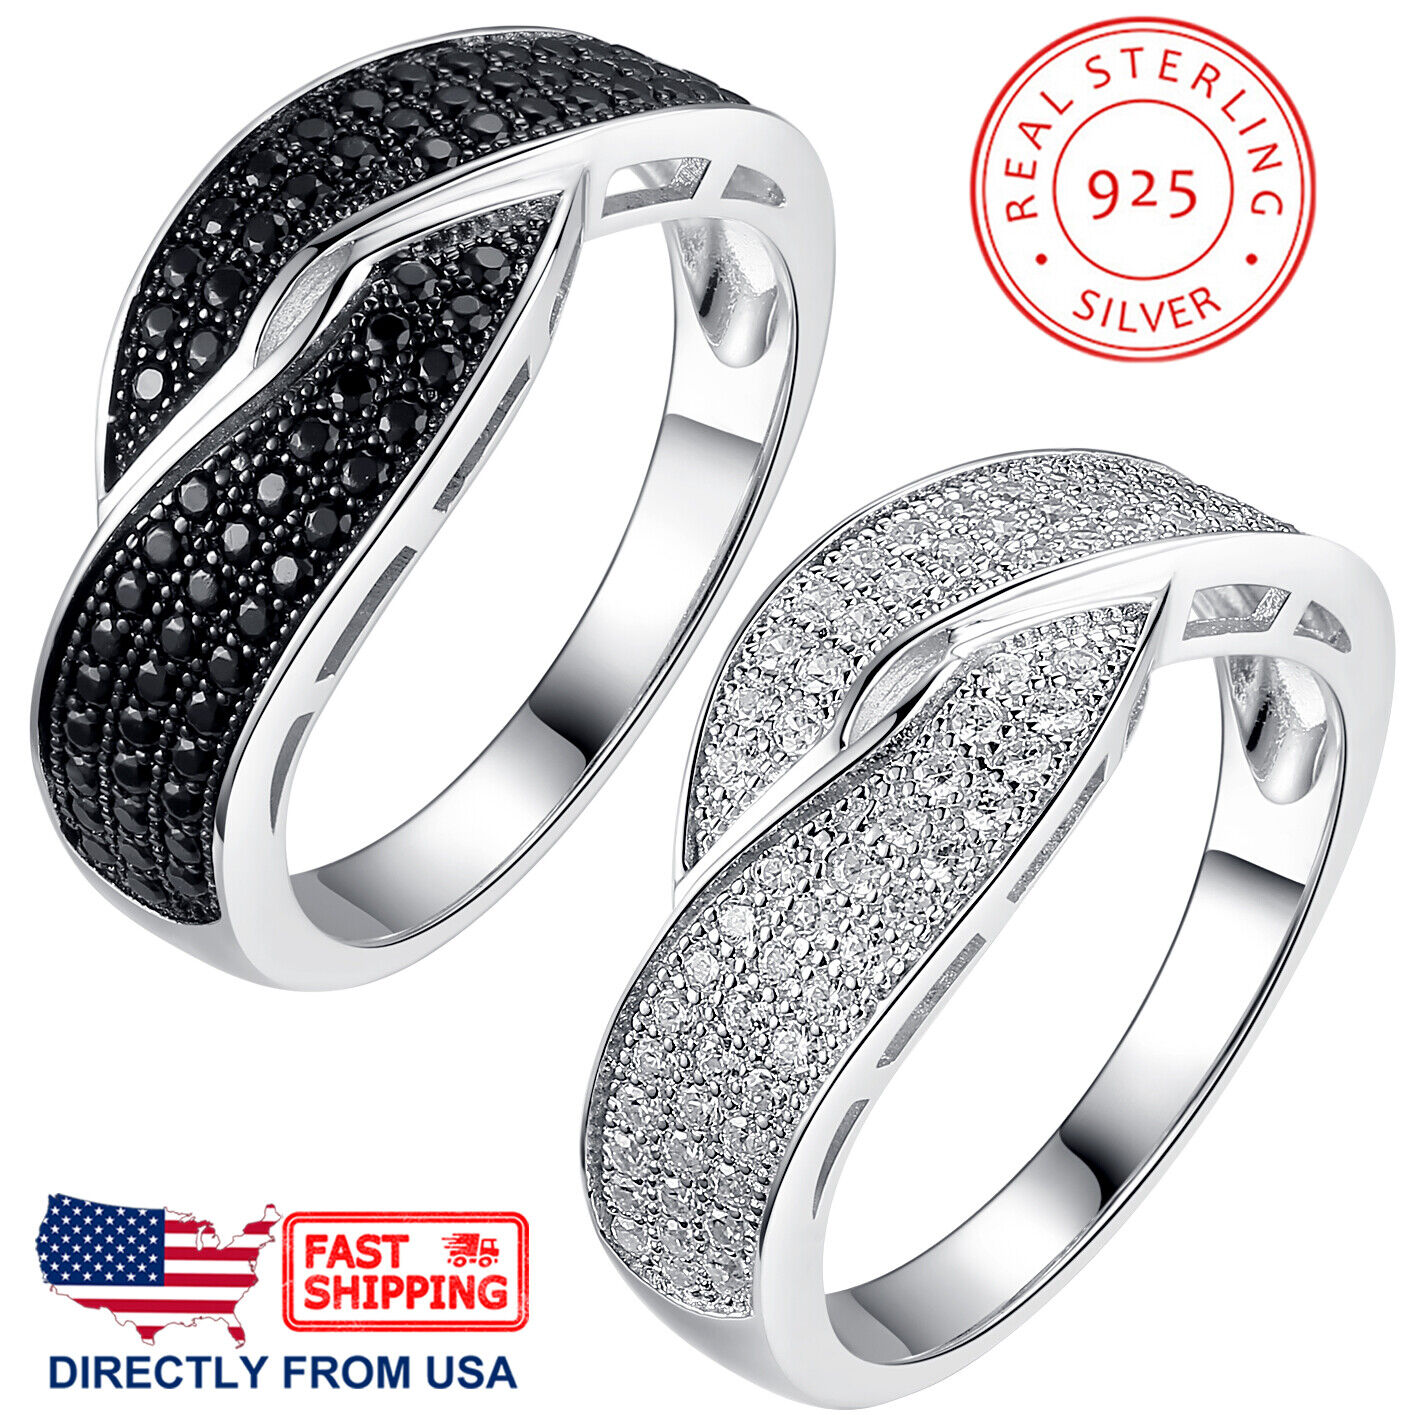 Women's Sterling Silver Crisscross Micro Pave Cubic Zirconia Cocktail Ring Fine Jewelry